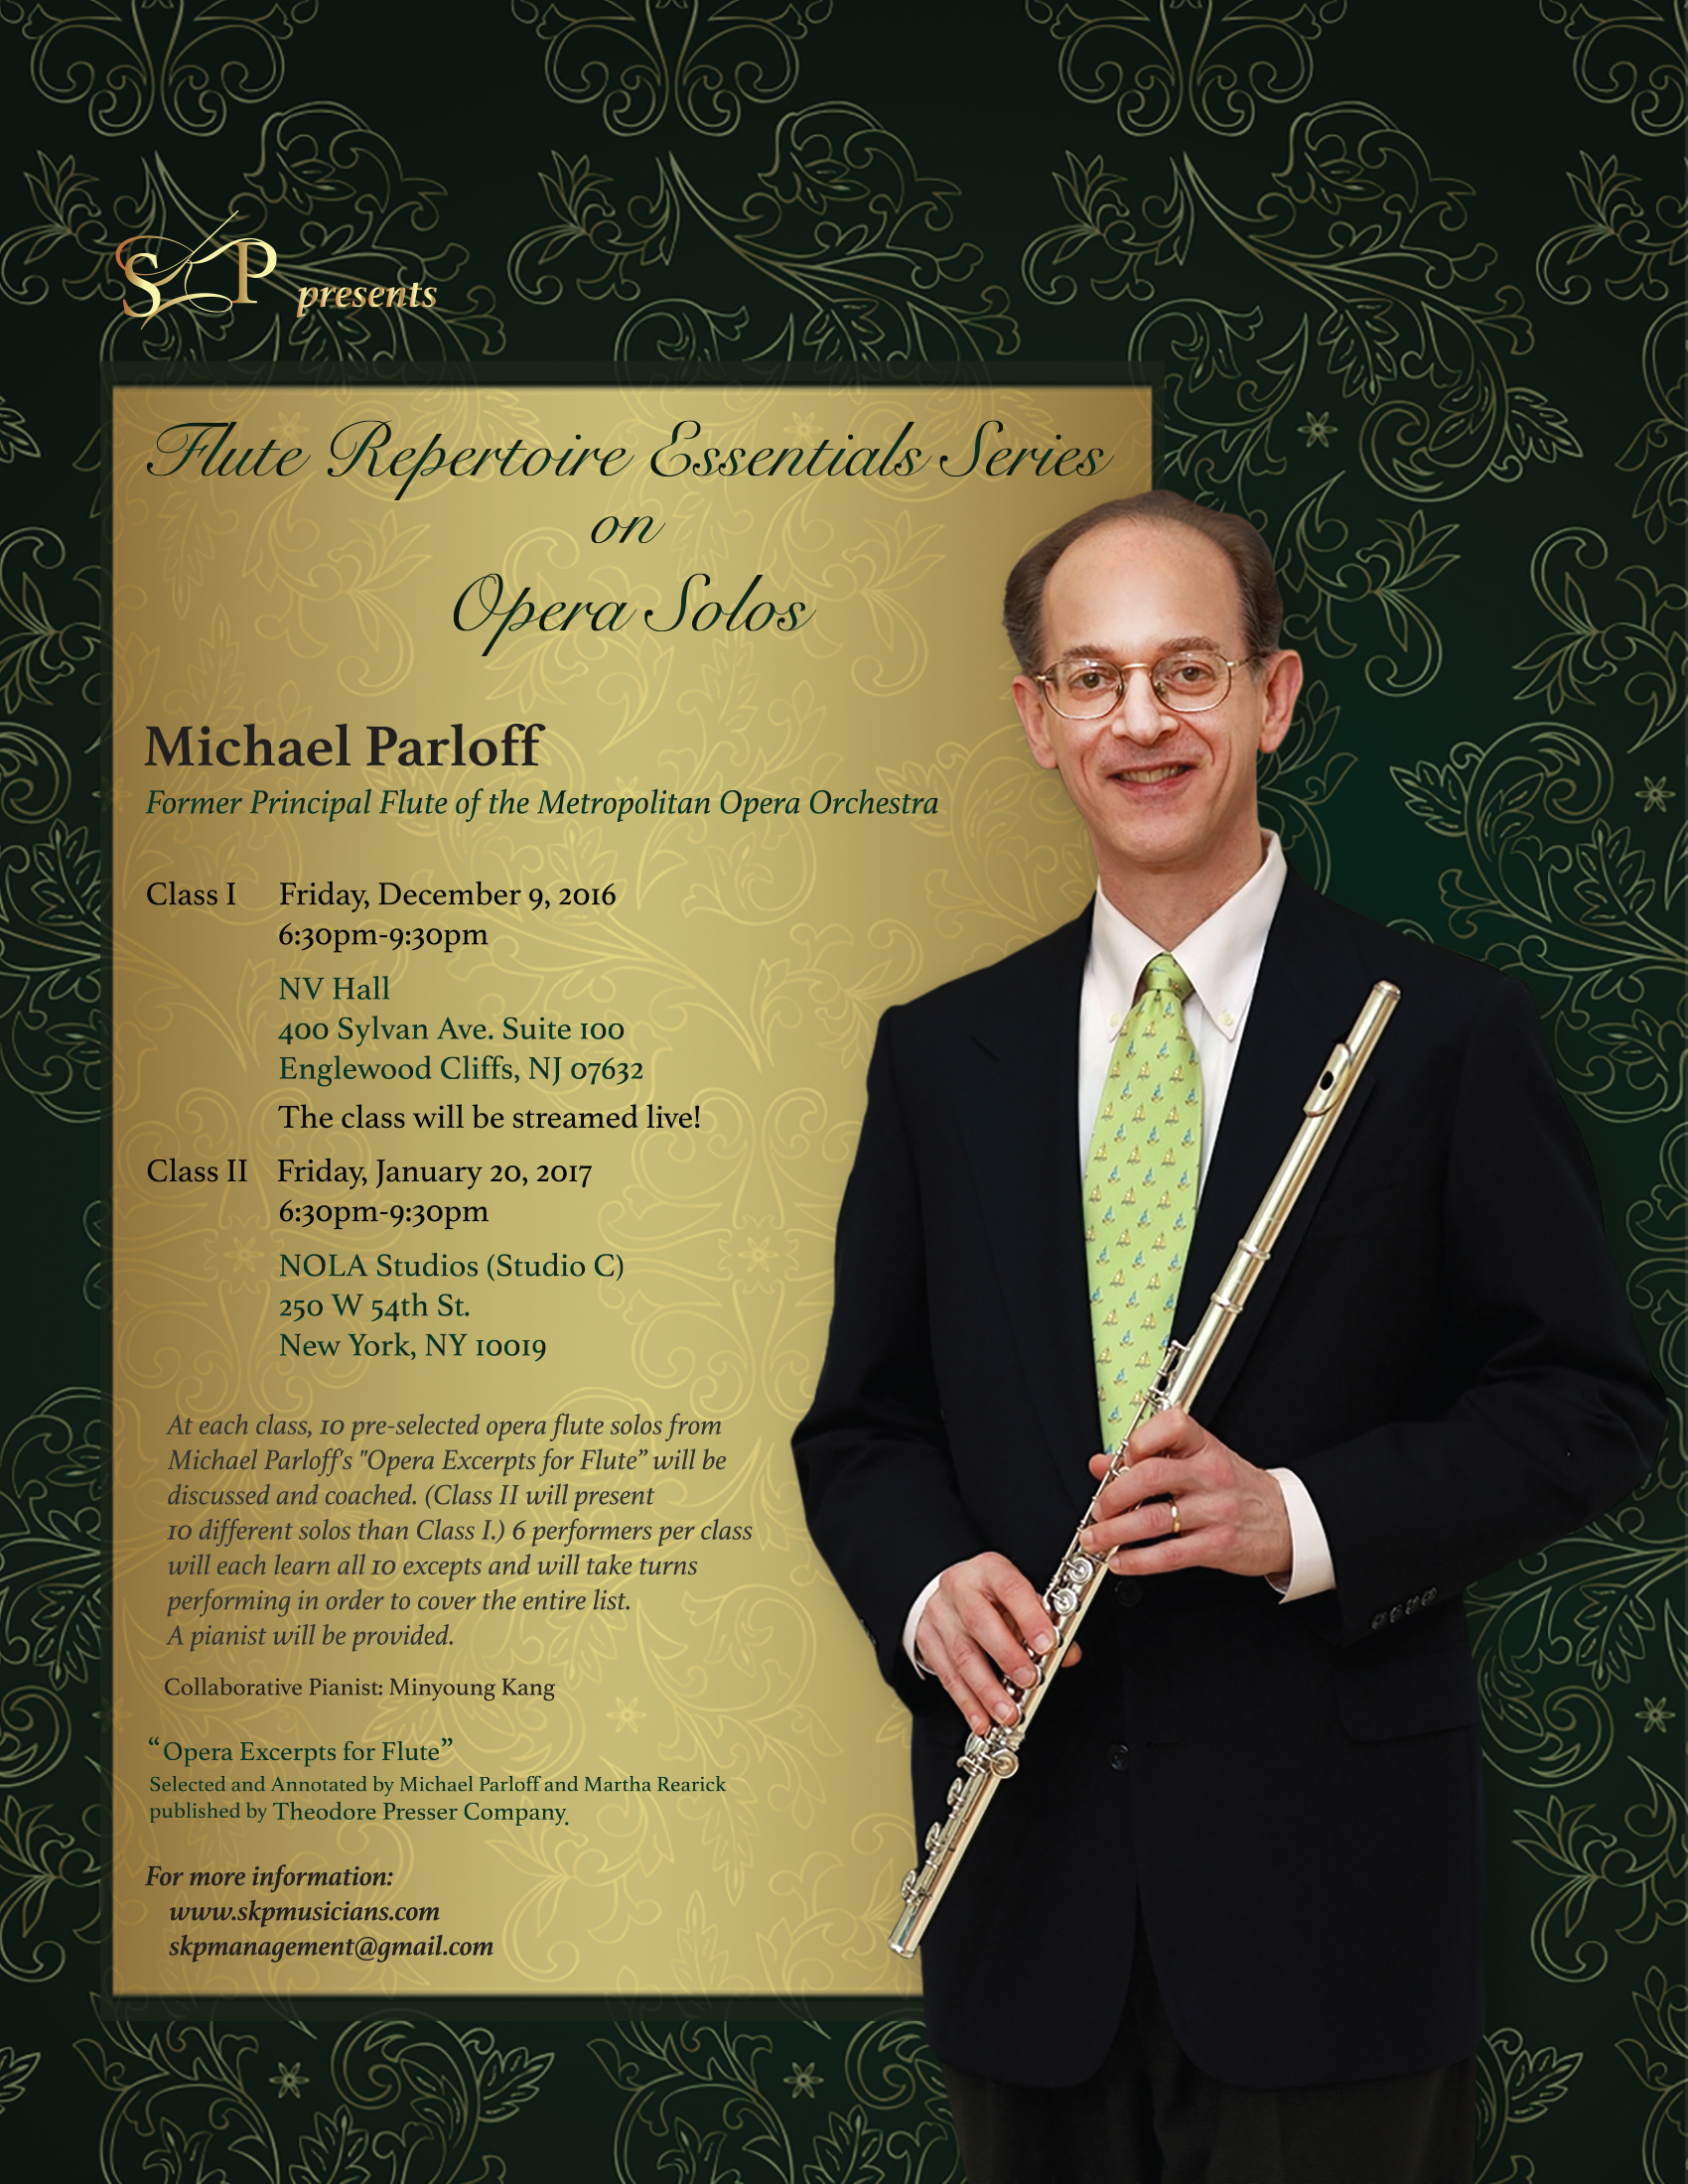 parloff-flyer#2-changed.jpg